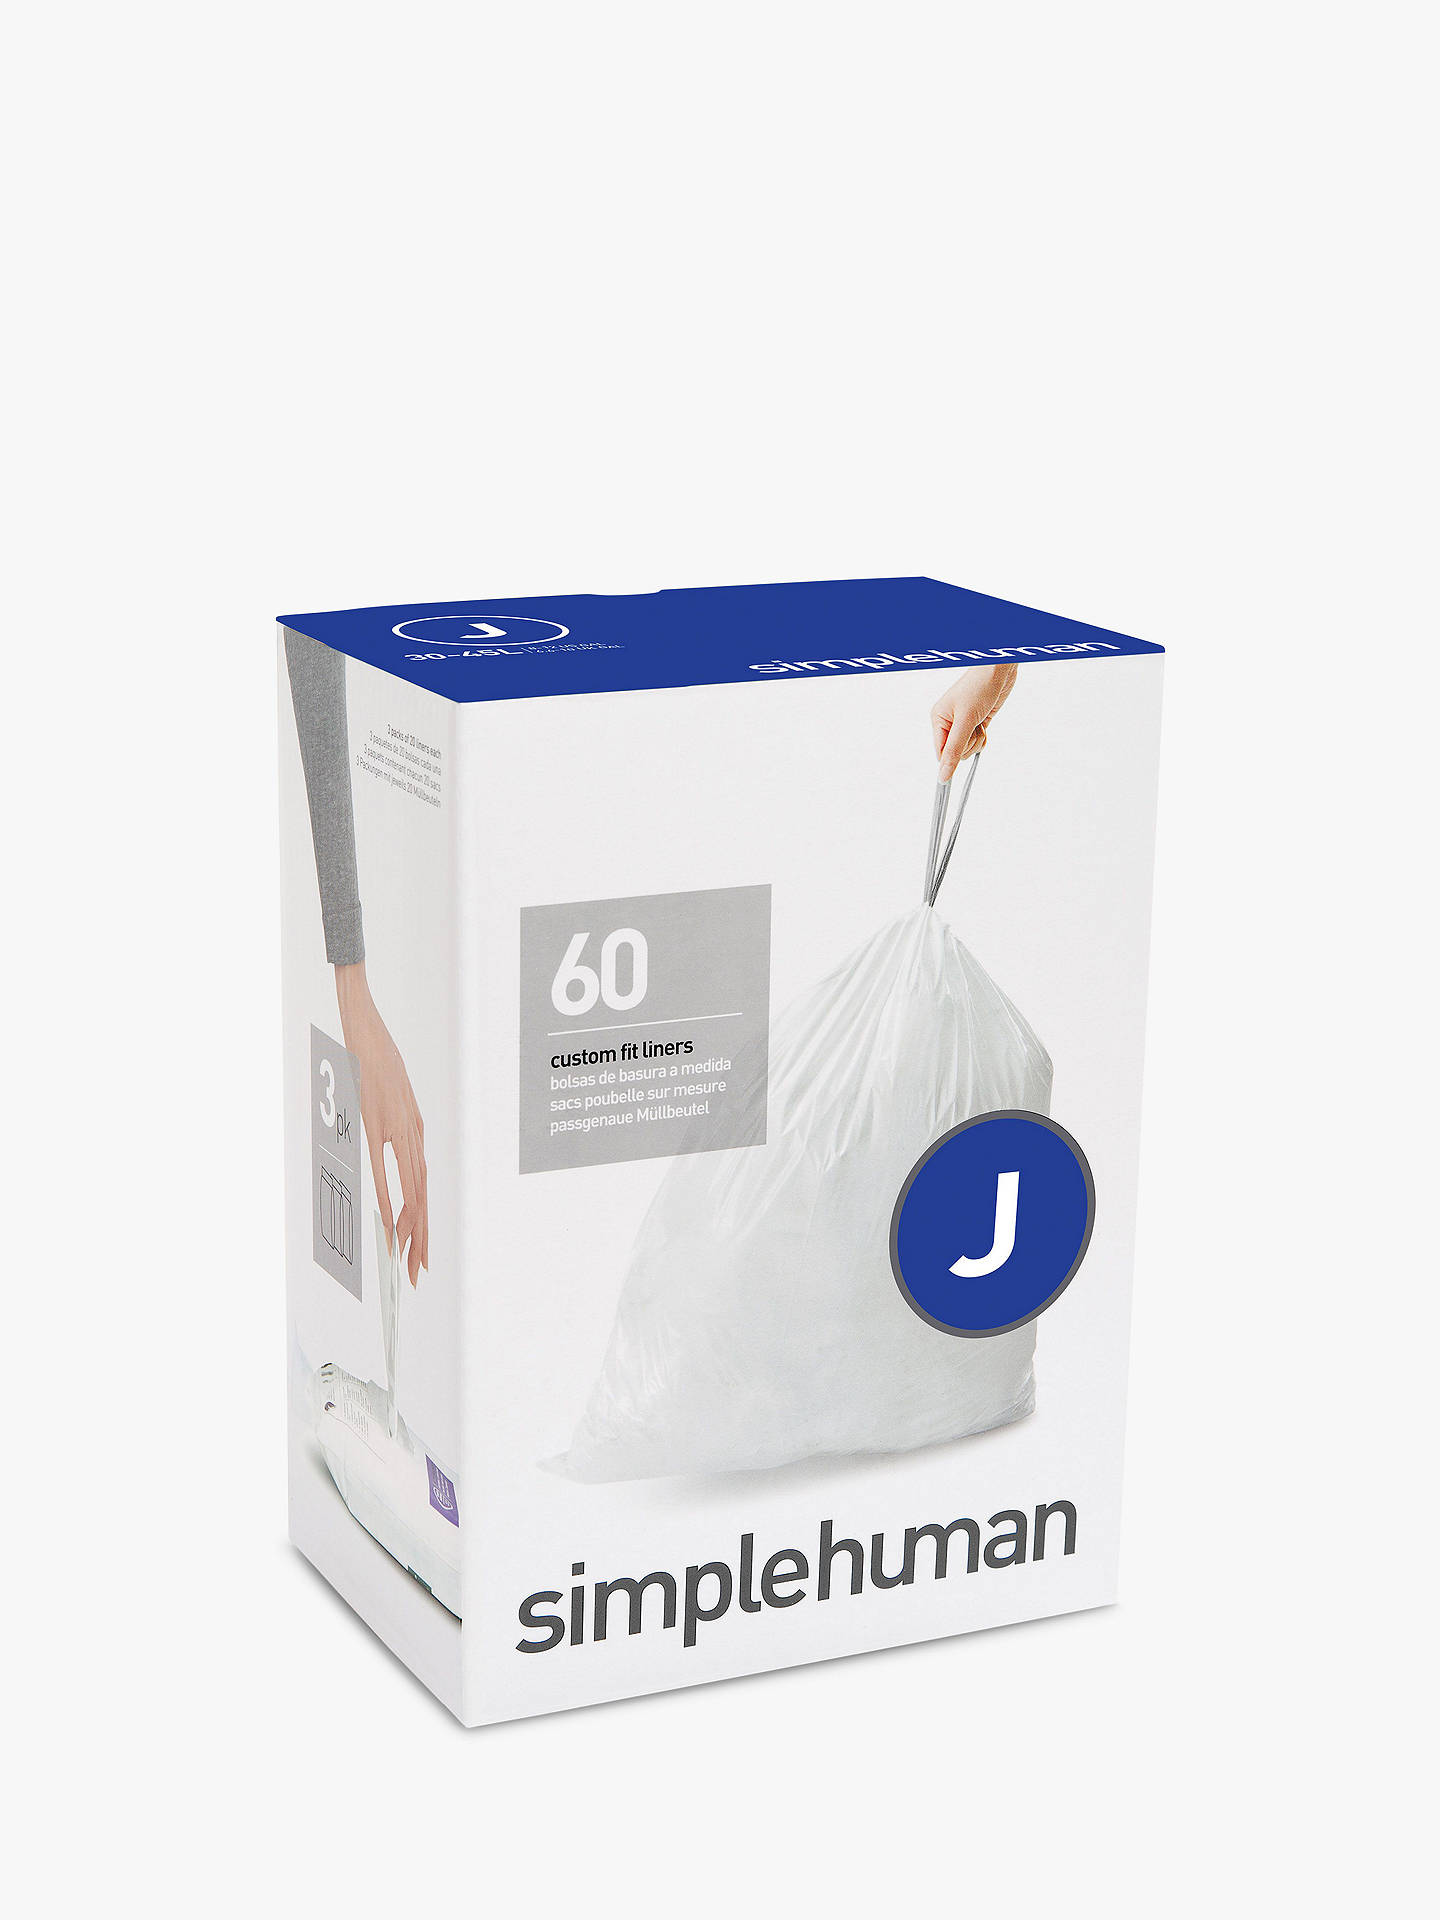 Buysimplehuman Bin Liners, Size J, Three Packs of 20 Online at johnlewis.com